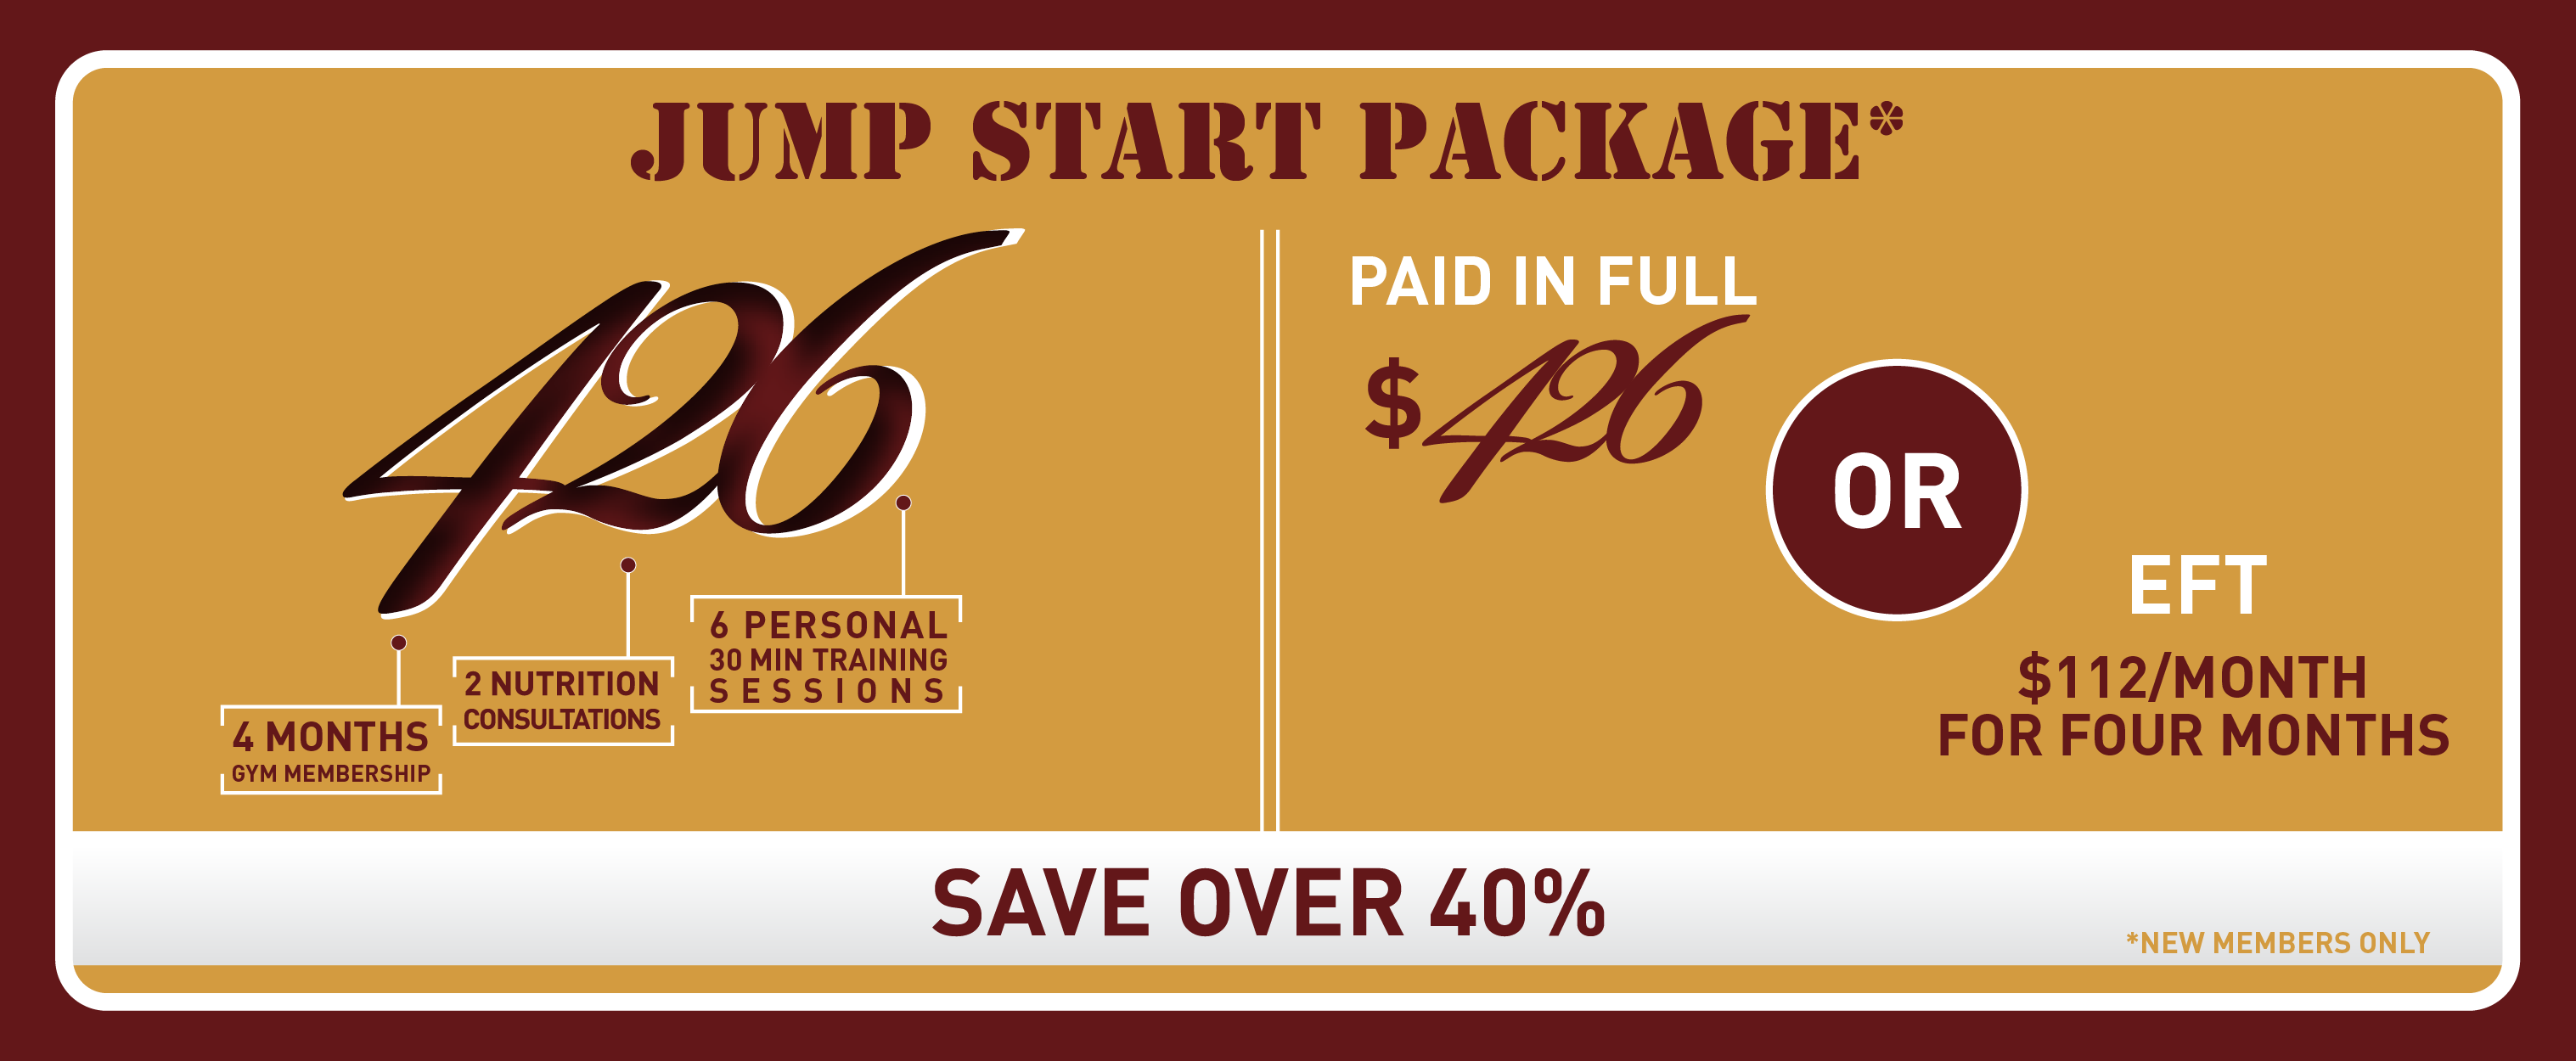 Jump Start Promo Package